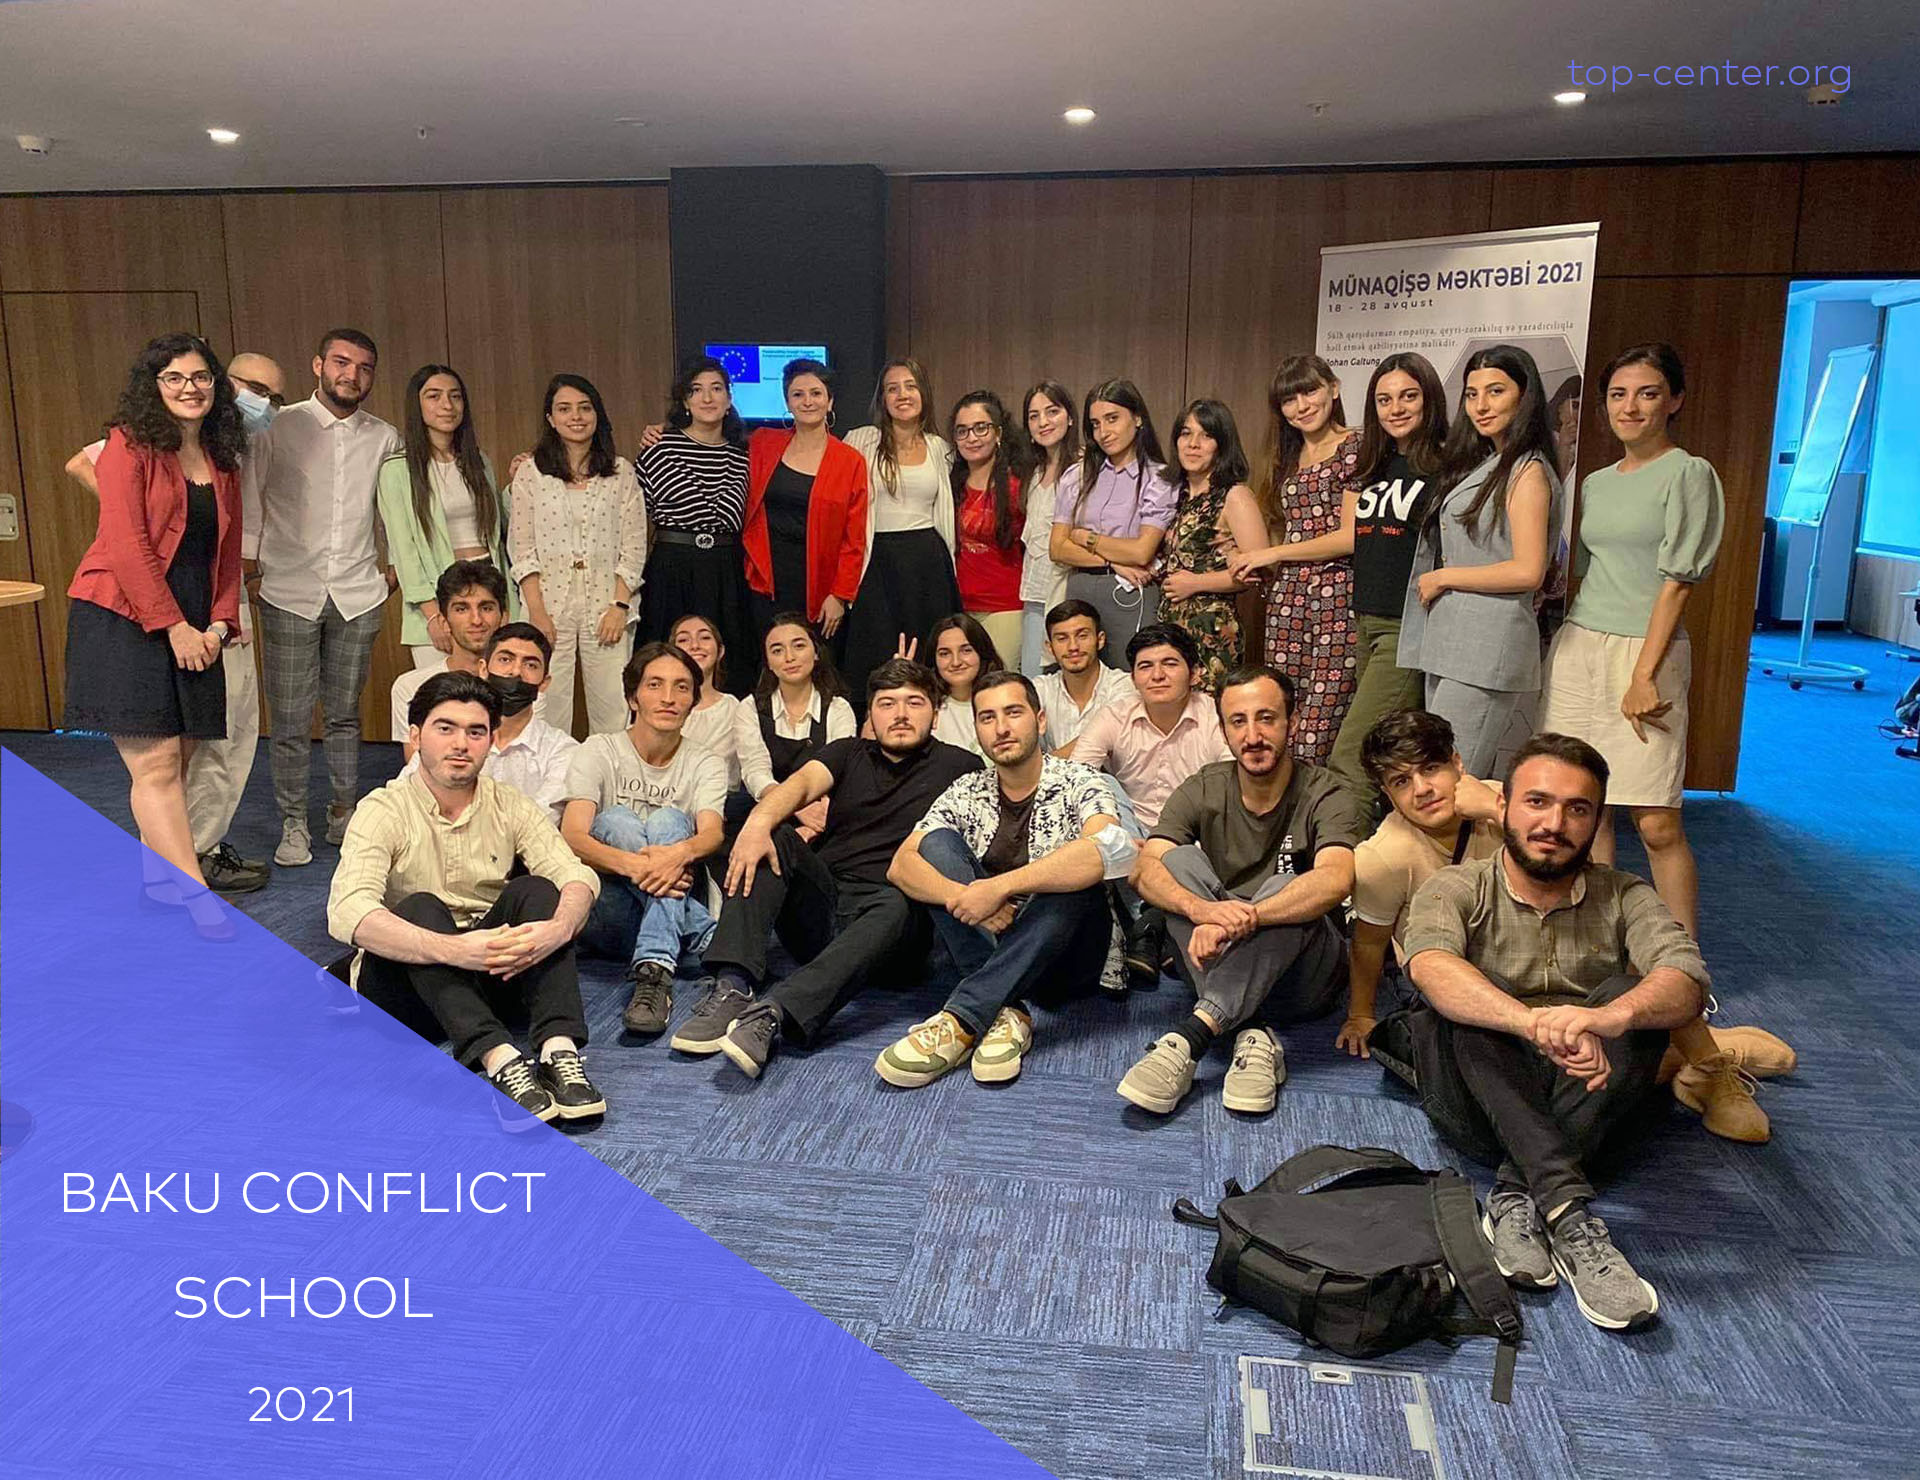 Our fellows participated in Baku Conflict School 2021